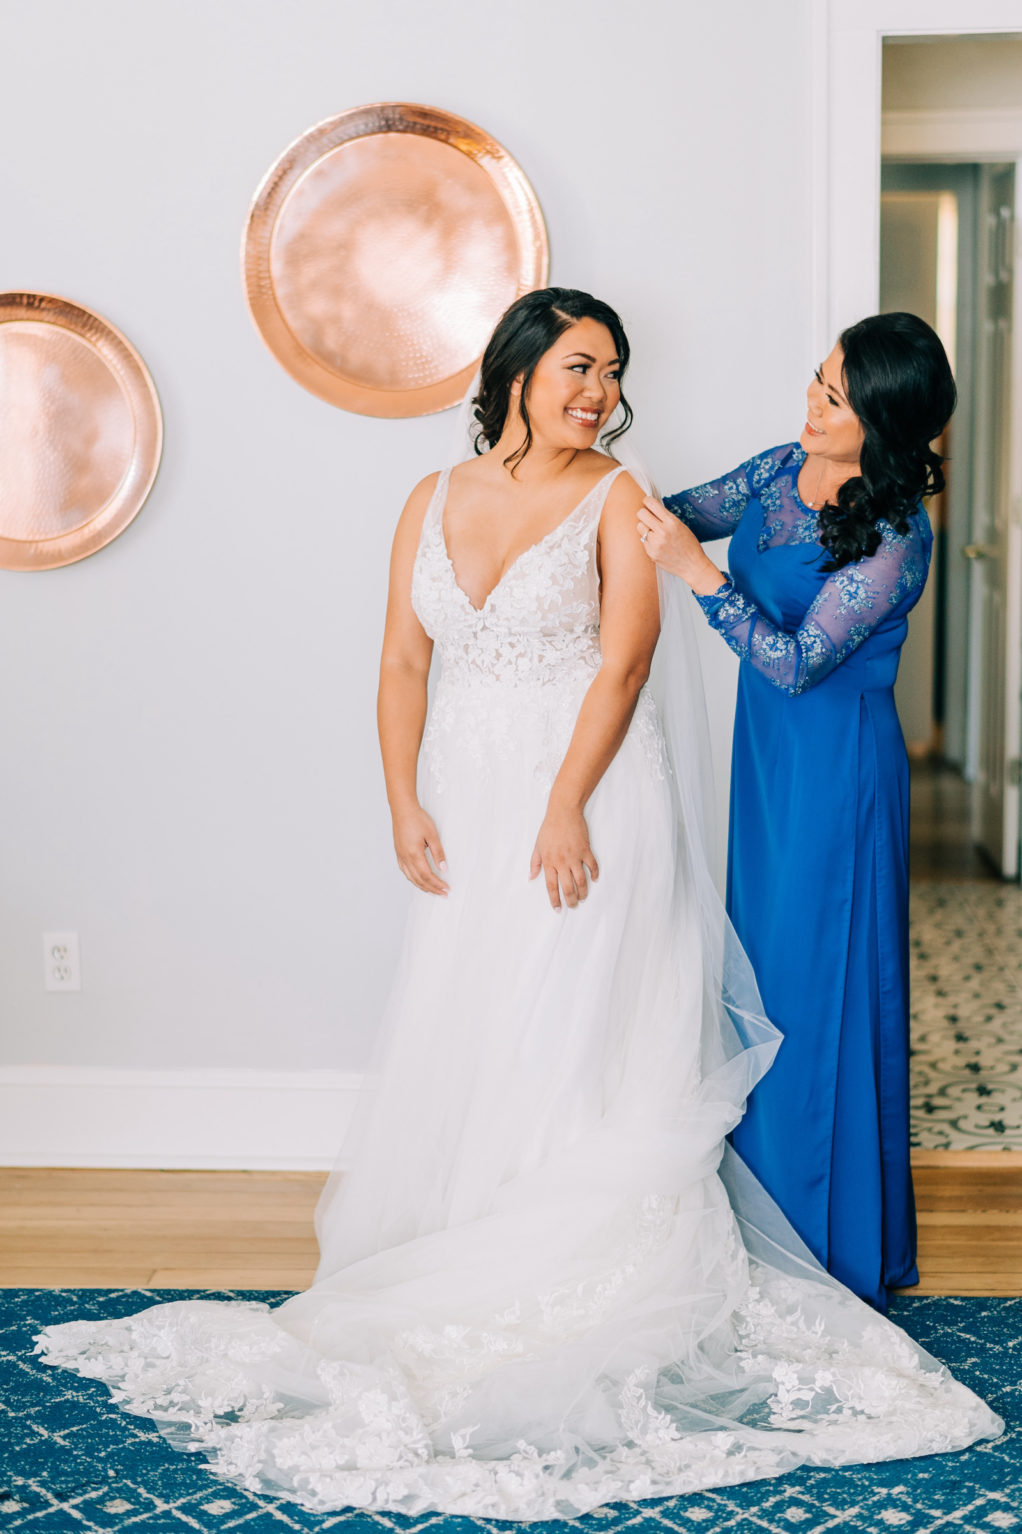 Tampa Bay Bride Getting Wedding Ready with Mom in Lace V Neckline with Straps Bodice and Tulle A-Line Skirt with Full Length Veil